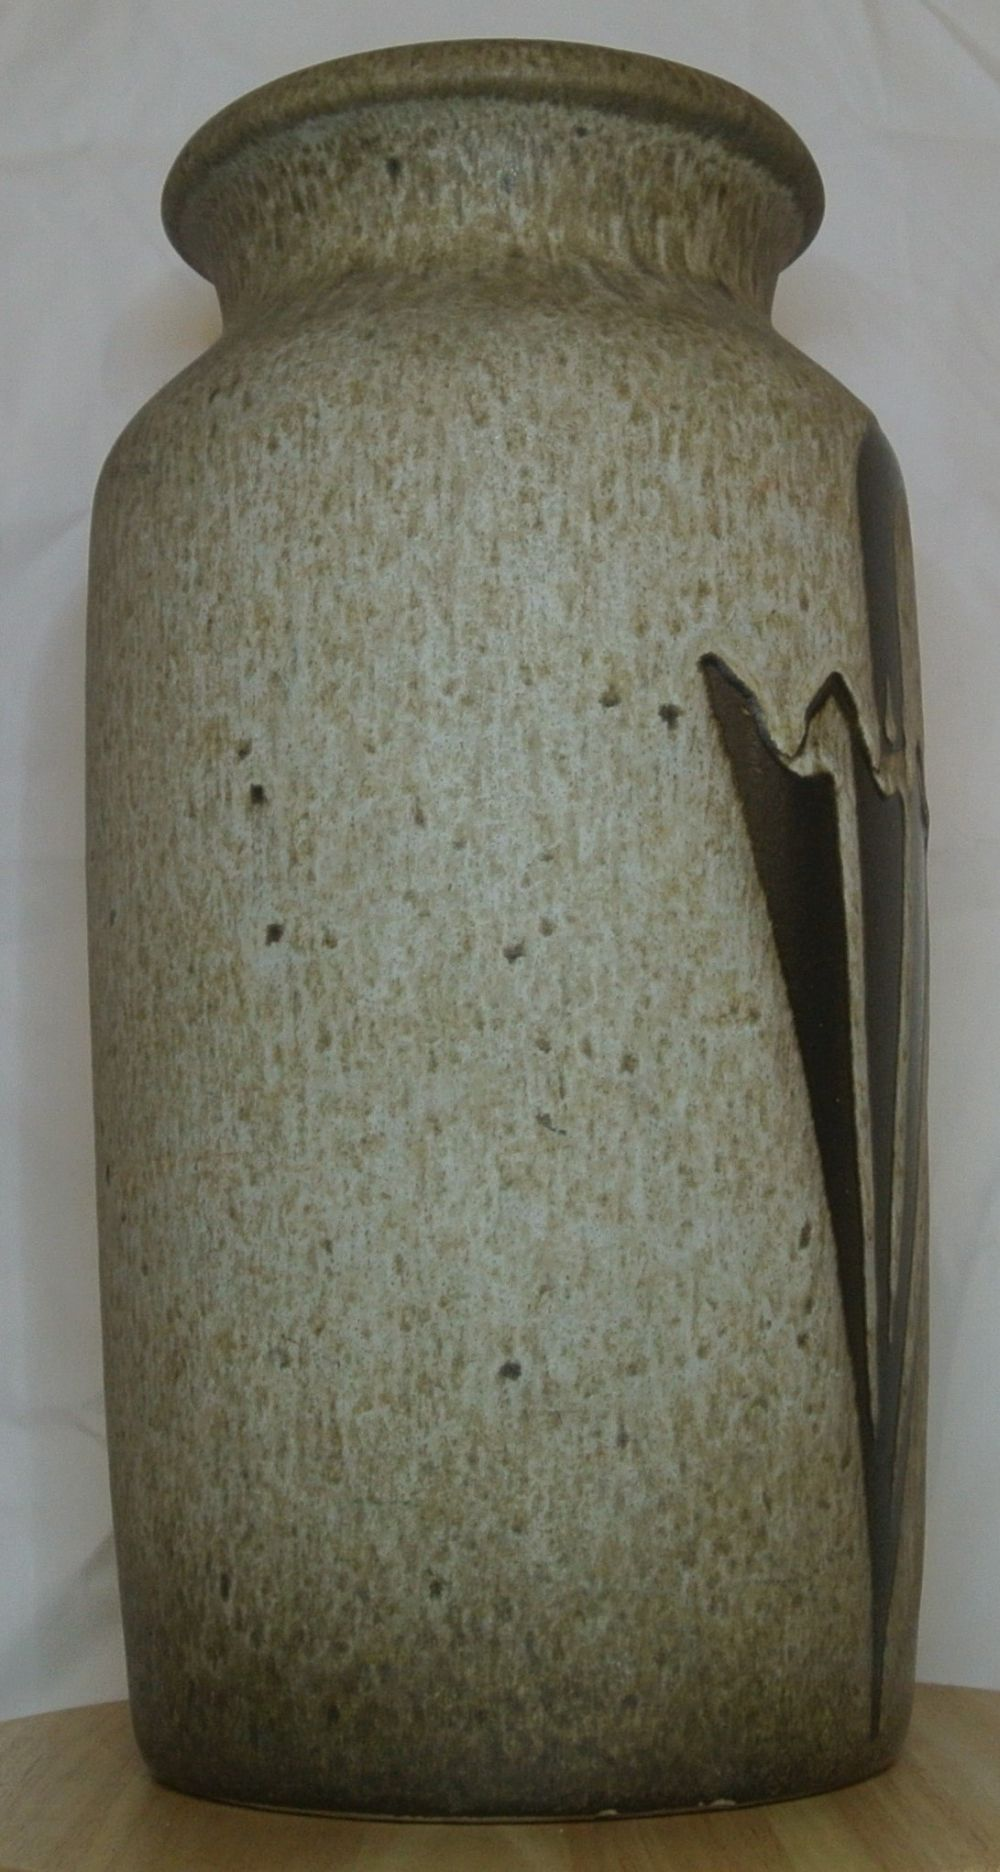 Lot 62: A vintage/ Mid Century West German Scheurich Keramik 'Fat Lava' ceramic umbrella stand/ vase